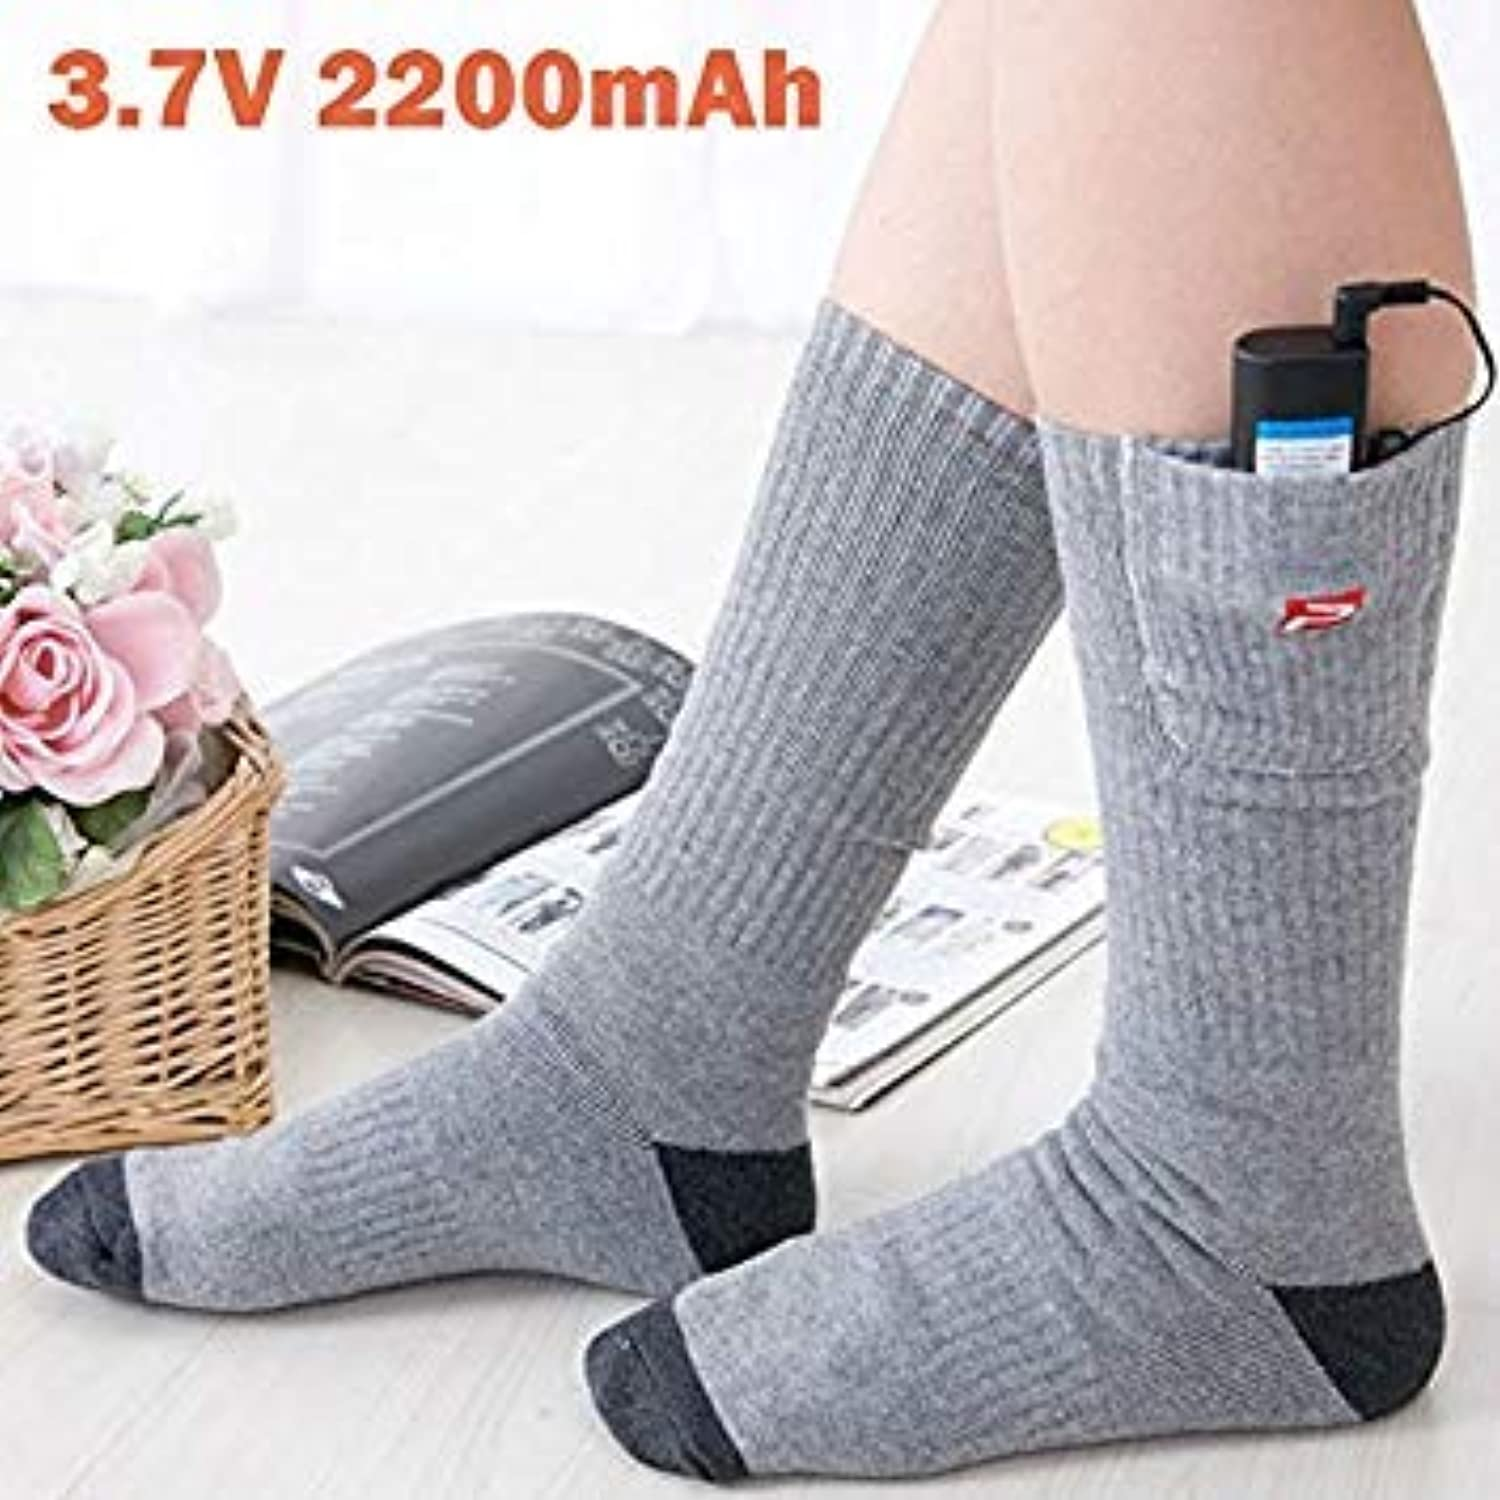 New 3.7V Unisex Winter Electric Rapid Heating Soft Socks Cotton Spandex Sock with 2200MAH Rechargeable Smart Battery HBCA500